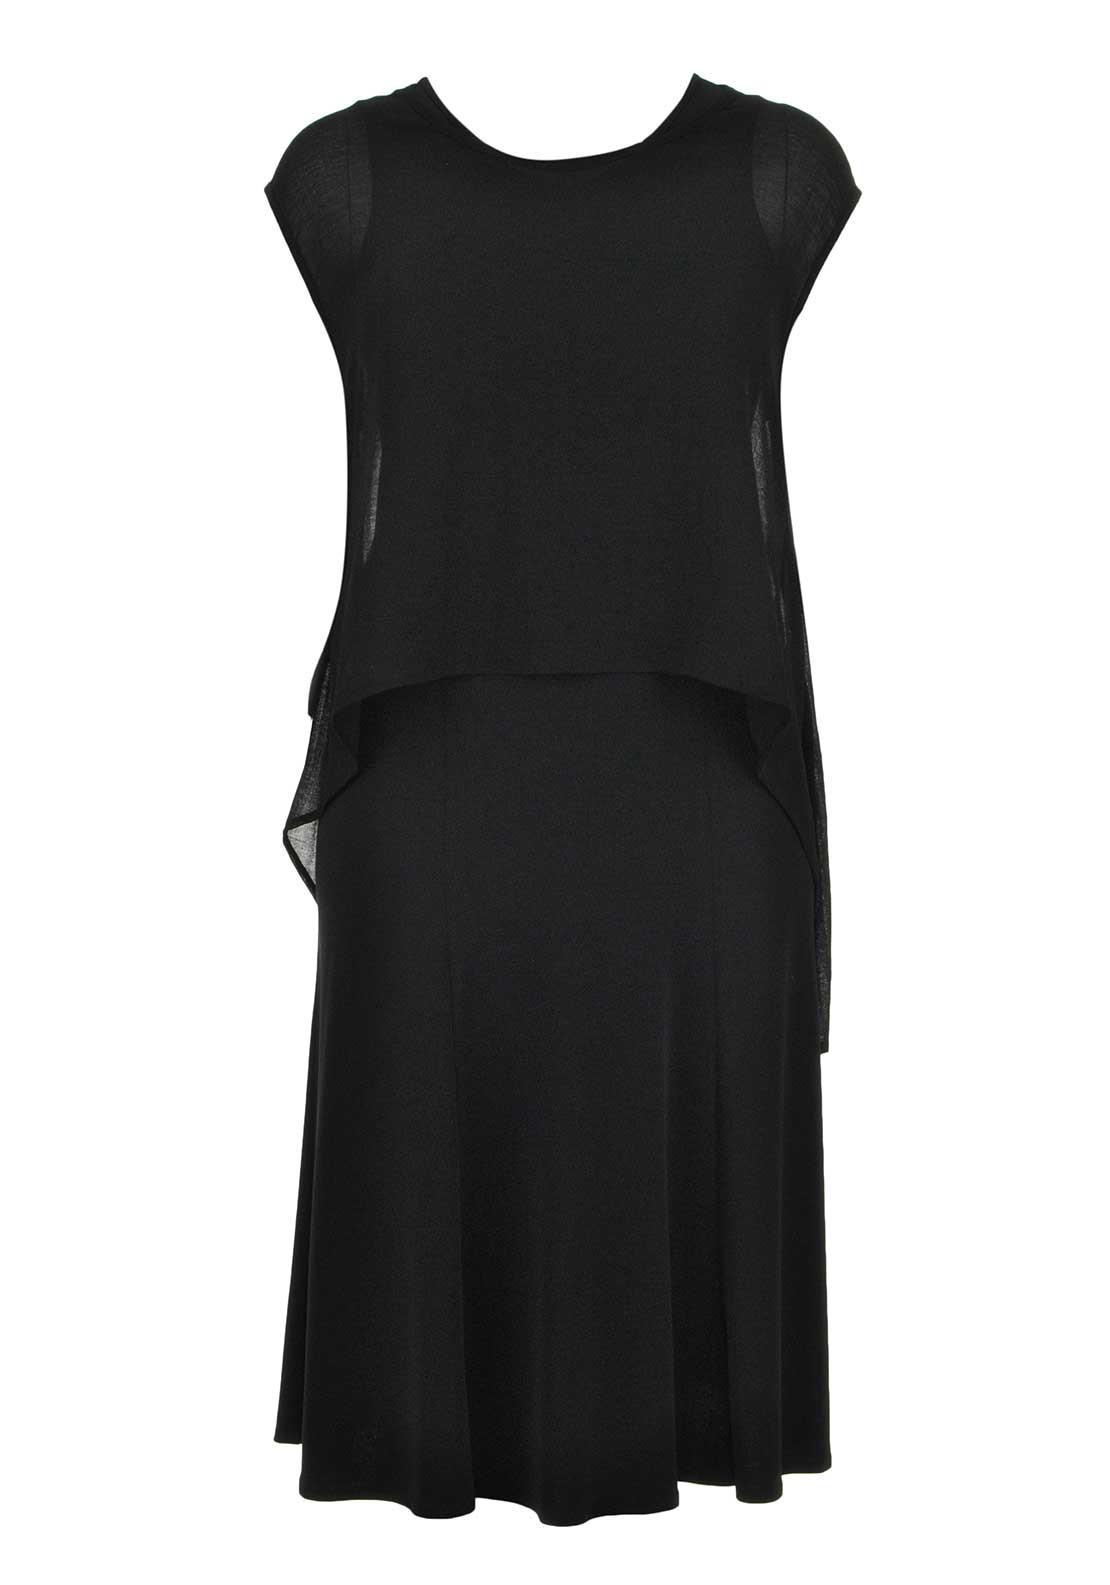 Doris Streich Ankle Length Dress with Sheer Overlay Top, Black